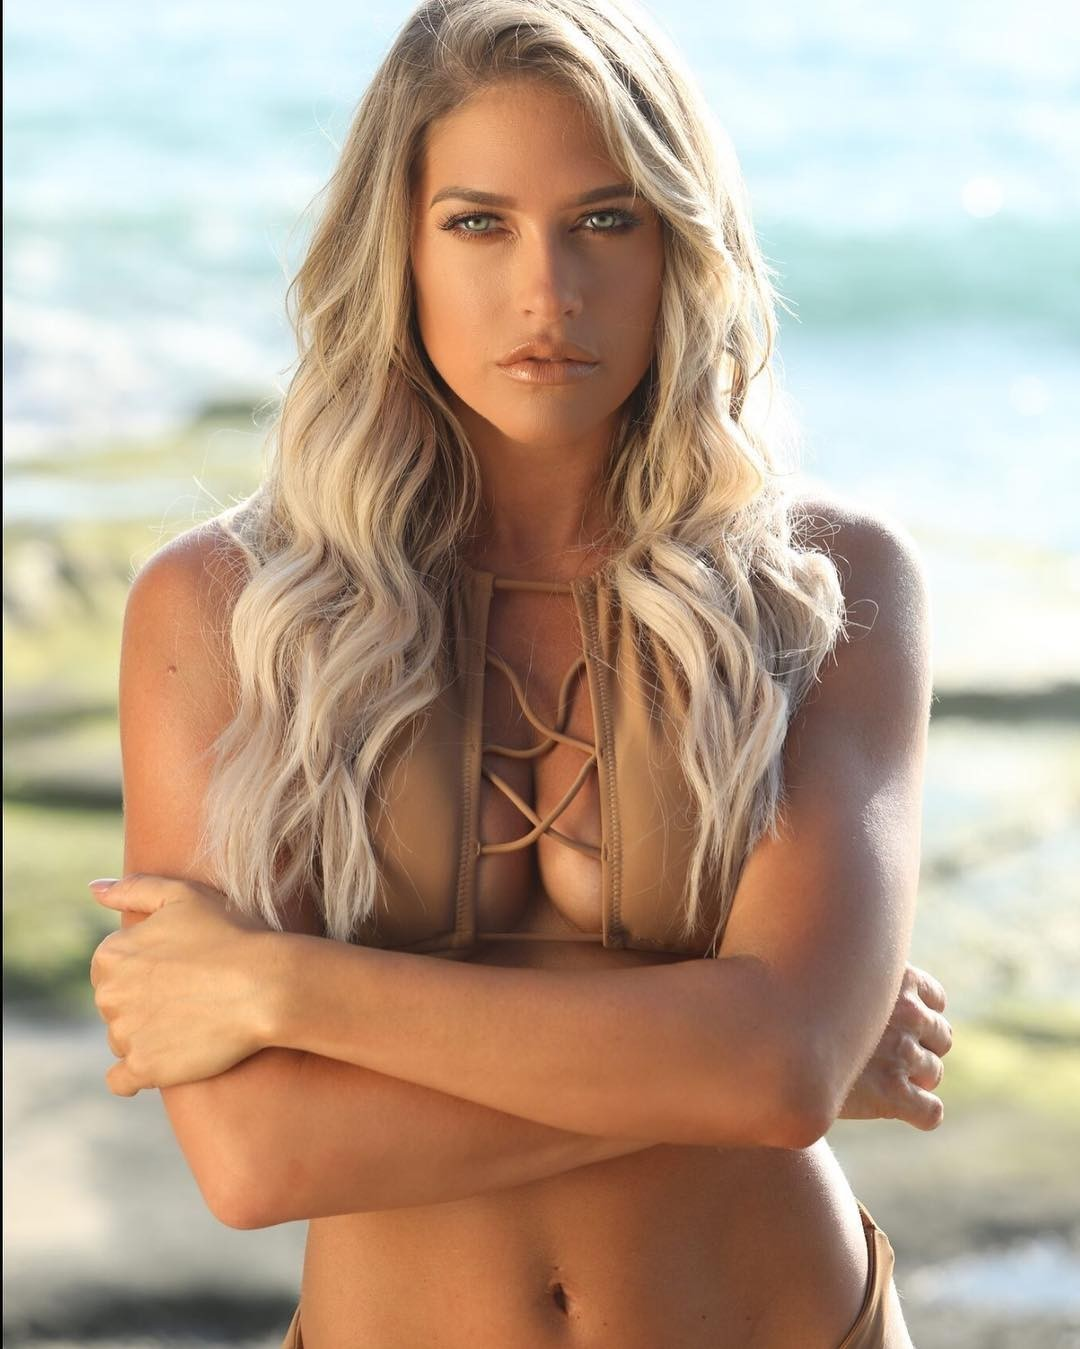 Kelly Kelly - WWE Topless nudes (91 photos)